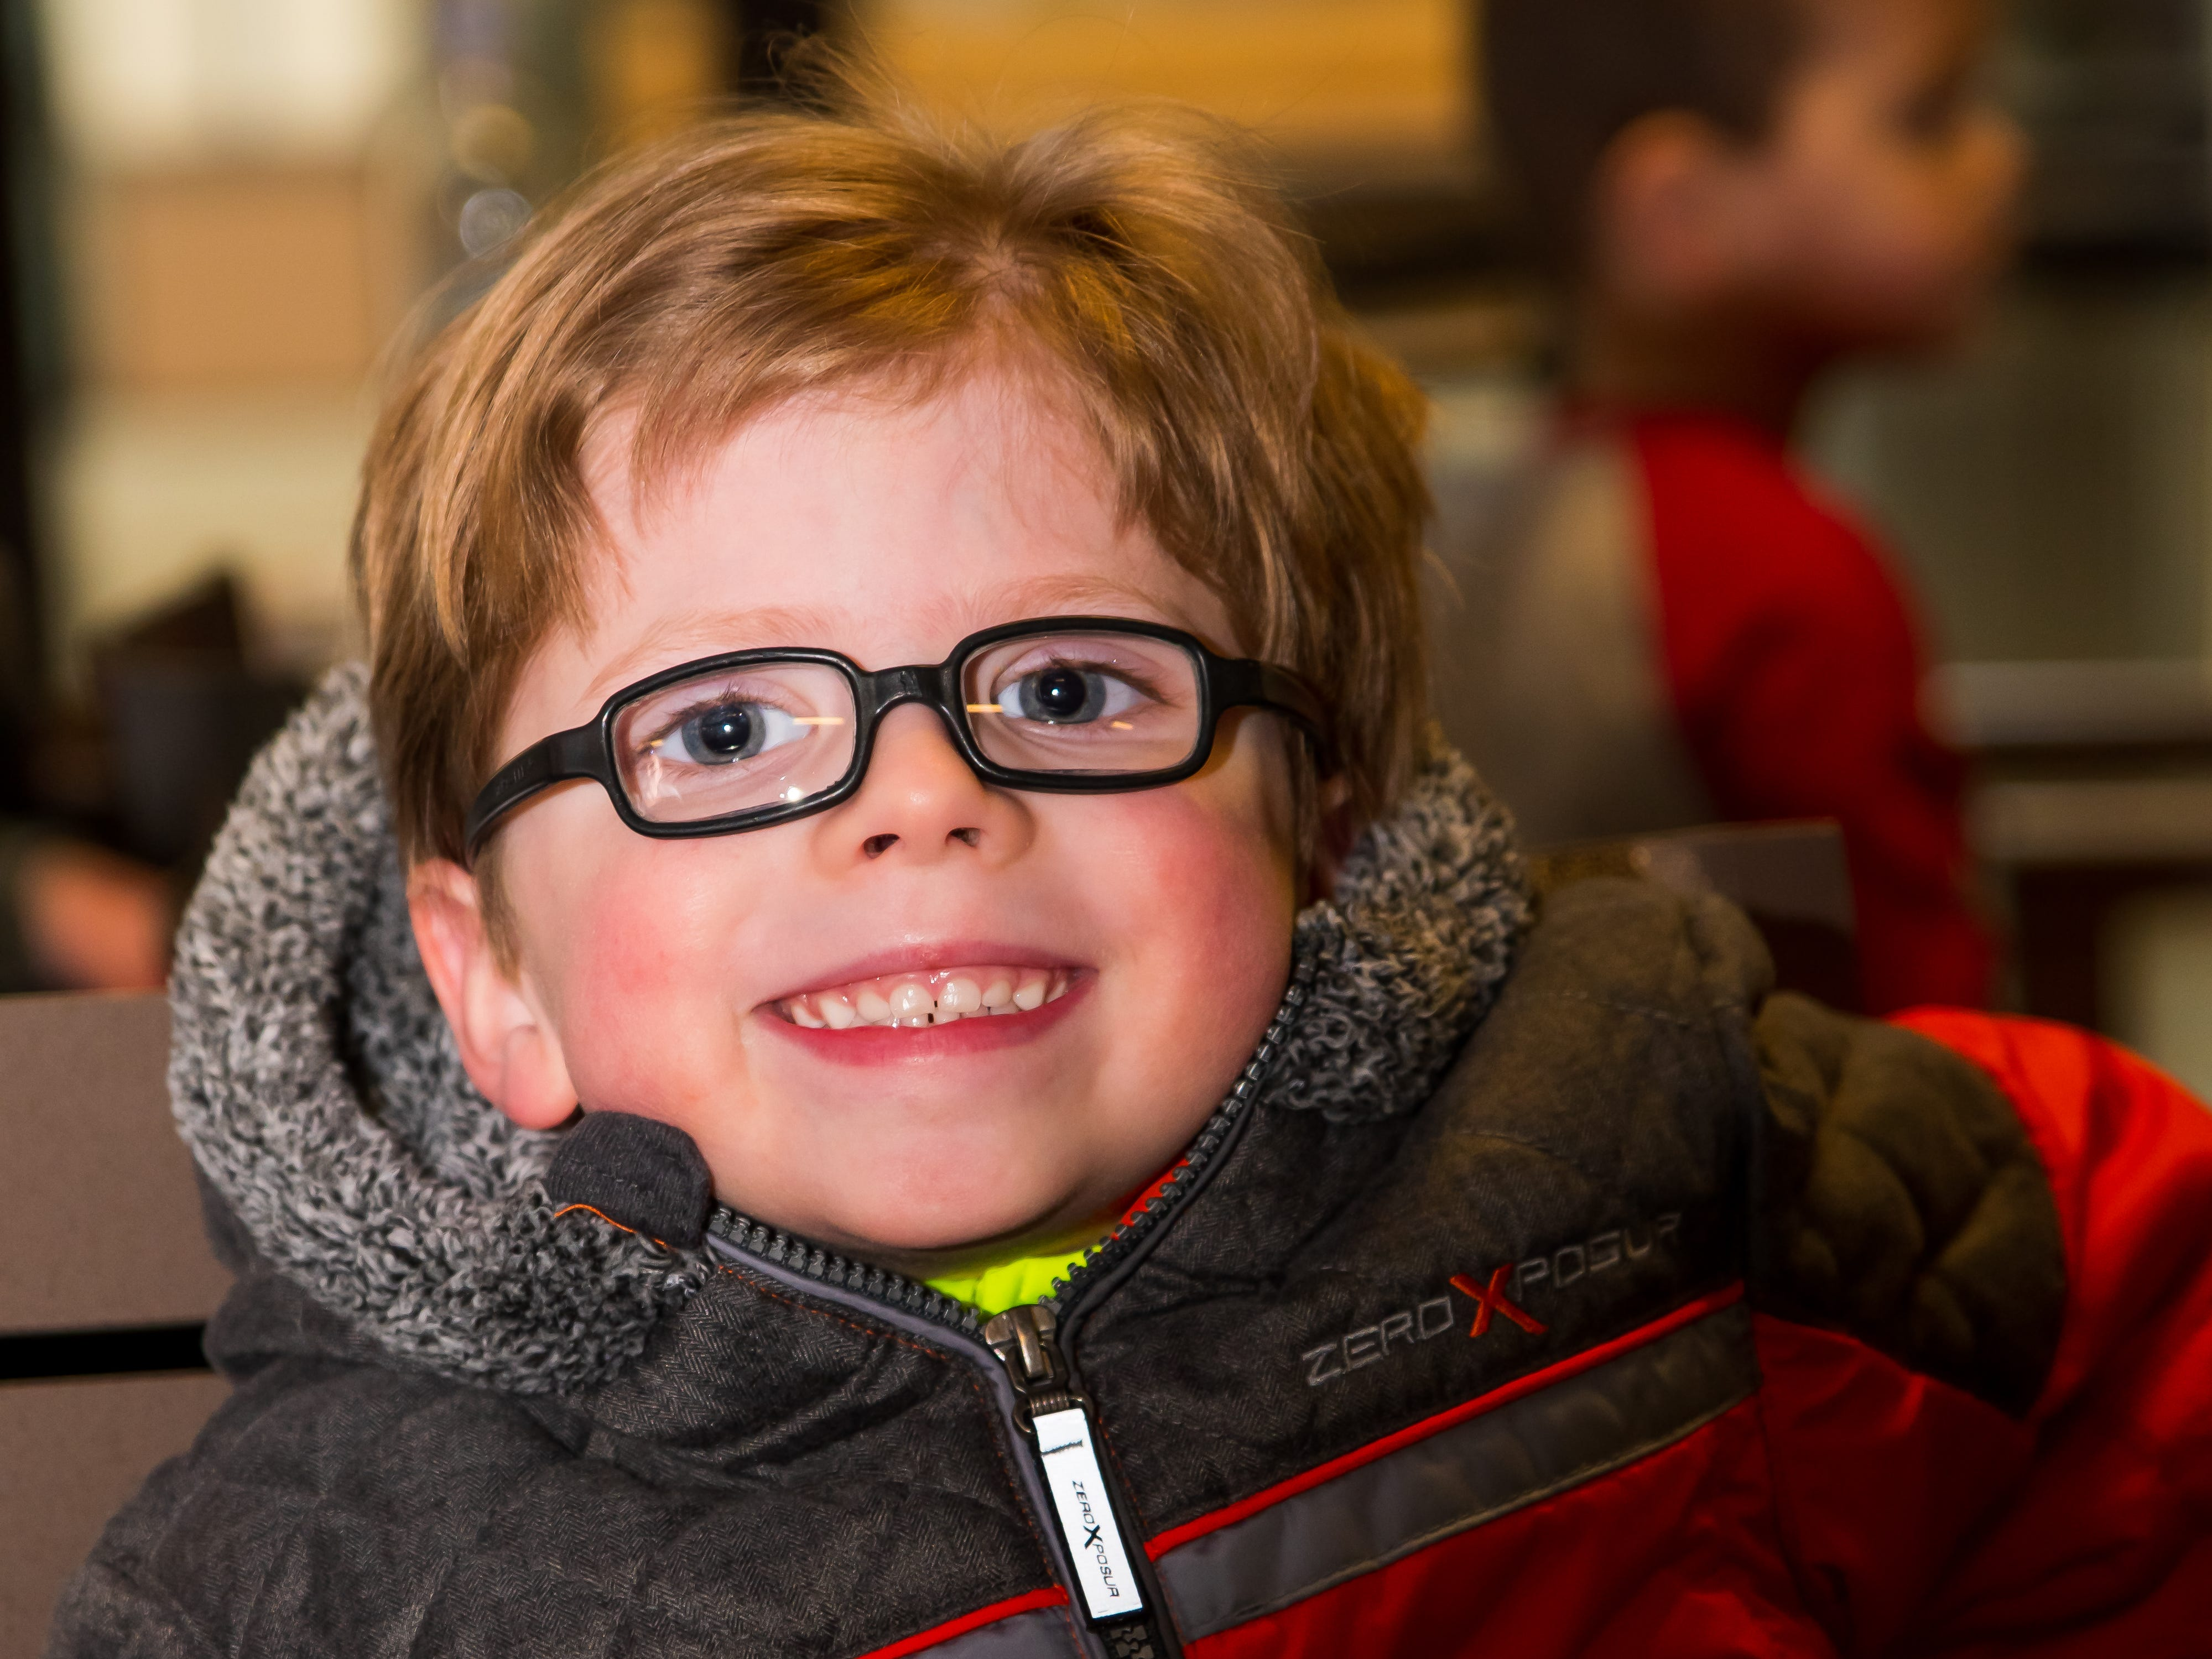 Barrett Herteen, 4, of Altoona is all smiles Wednesday, March 20, 2019, during a Science Center program at the Outlets of Des Moines in Altoona.